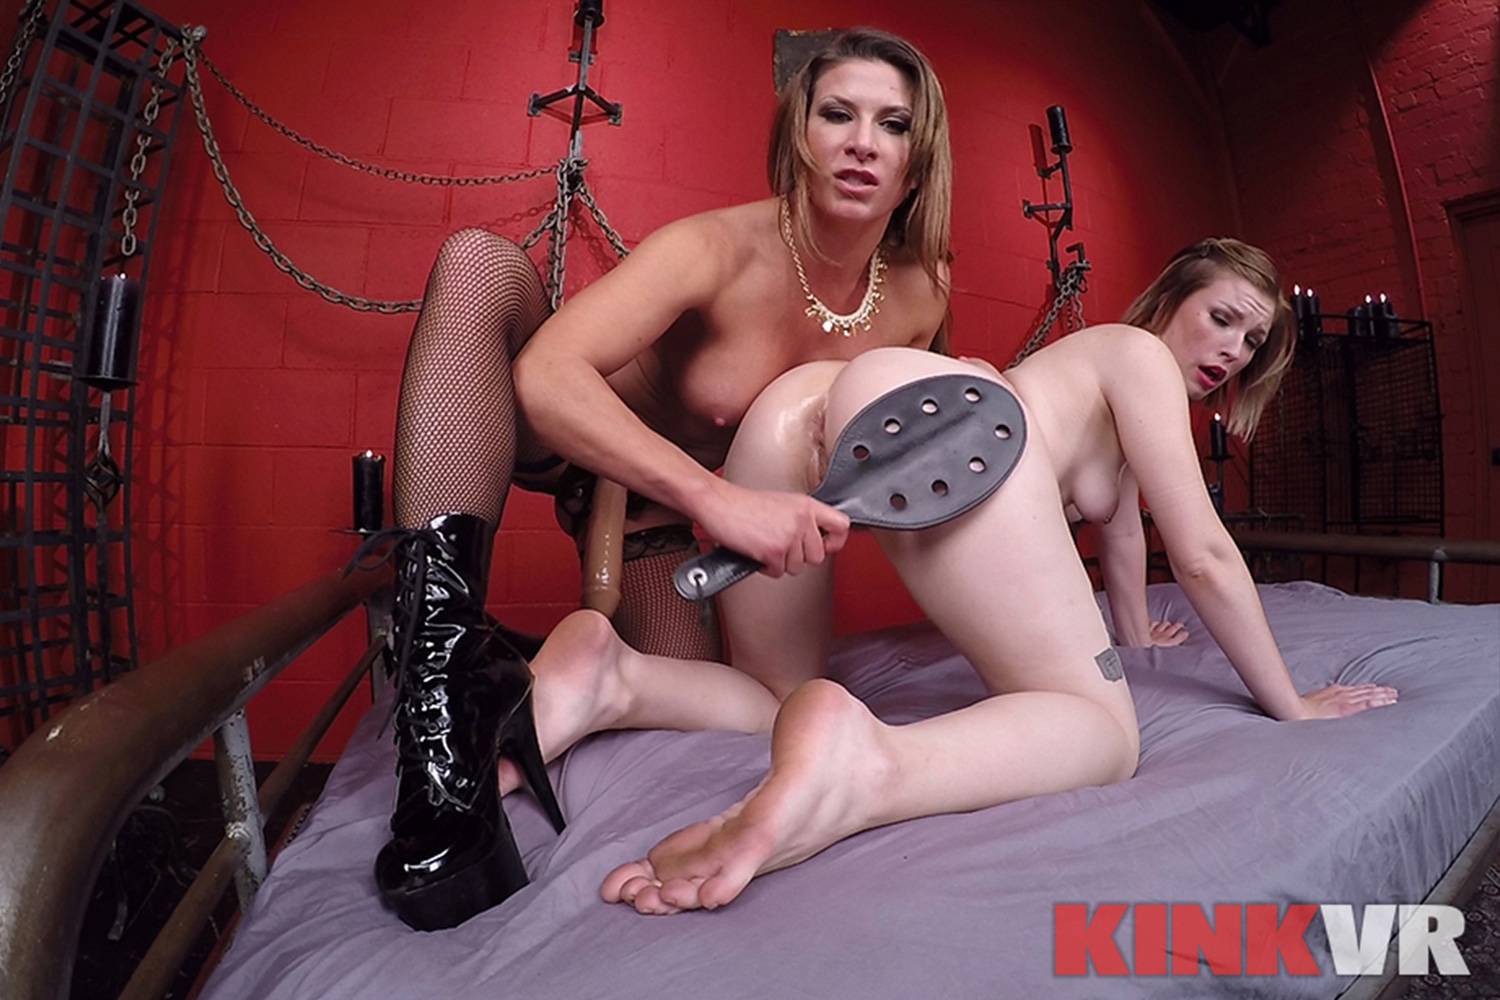 Lesbian Strap-on Fucking VR Porn Video